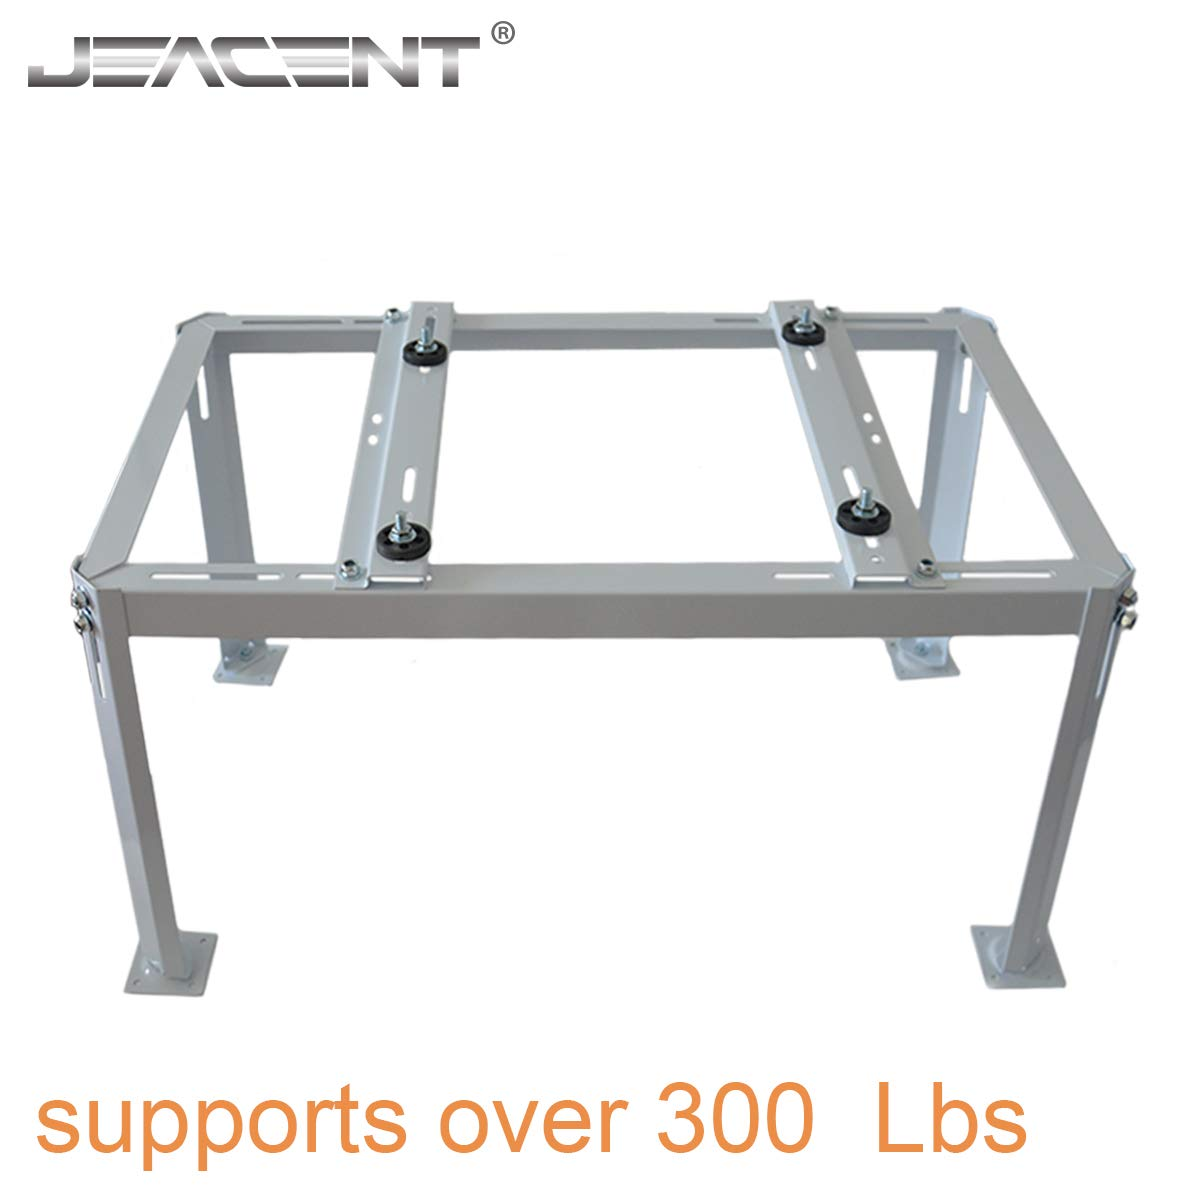 Jeacent Ground Stand Mini Split, Air Conditioner Mounting Support Bracket Jeacent Innovations